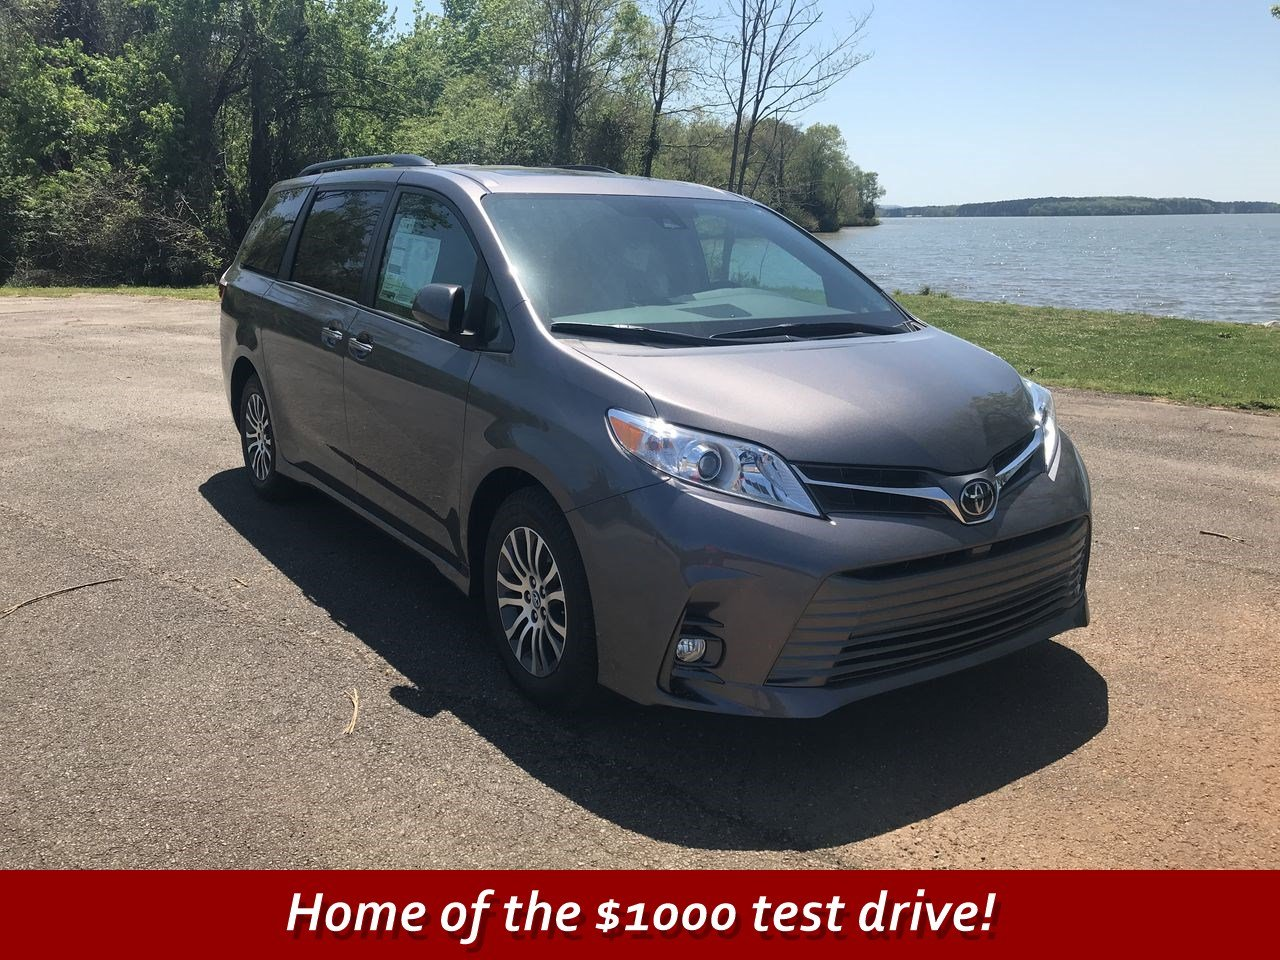 Toyota Sienna Service Manual: Basic inspection